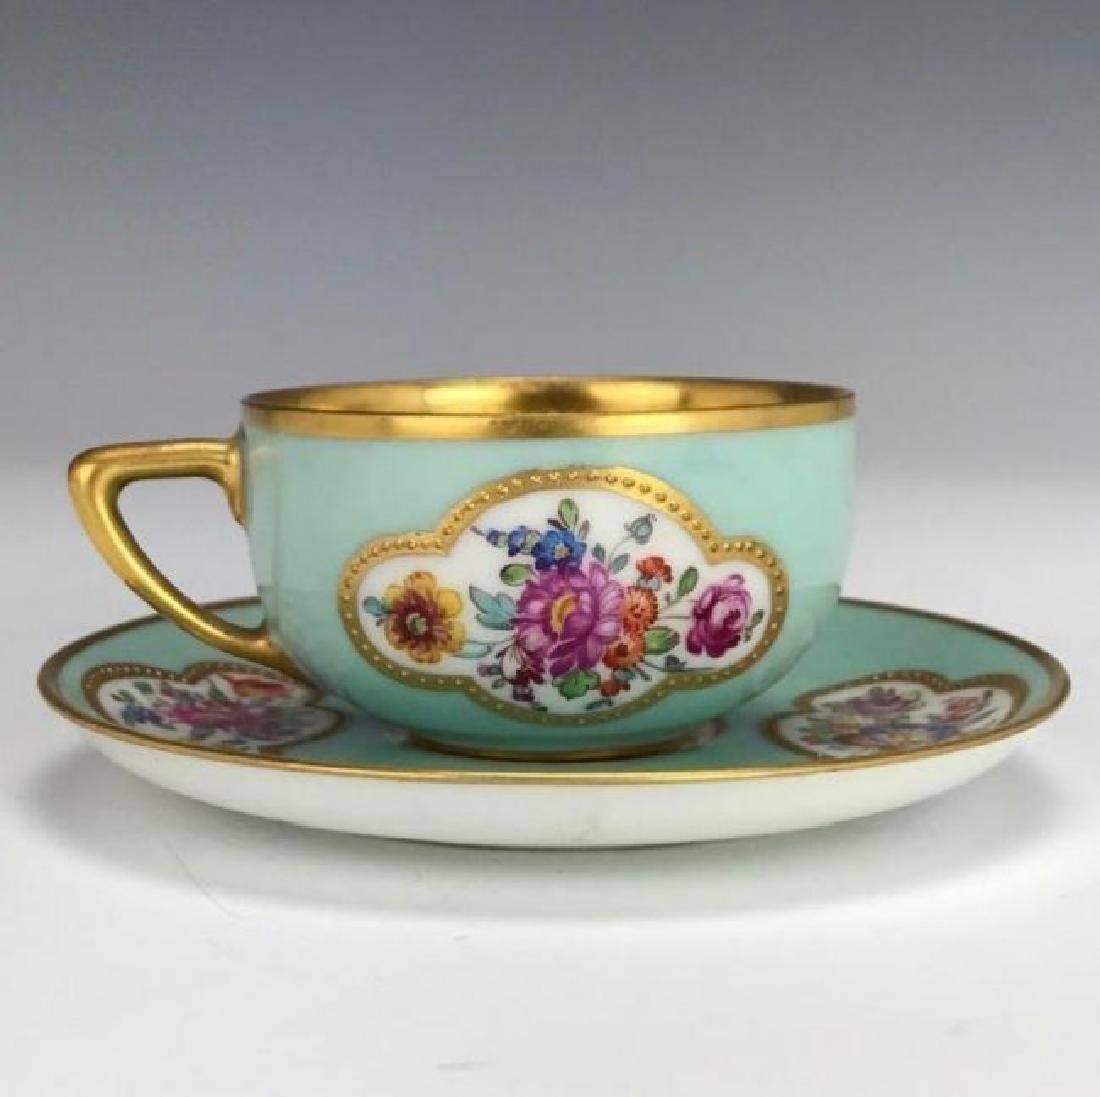 DRESDEN DEMITASSE CUP AND SAUCER CIRCA 1900